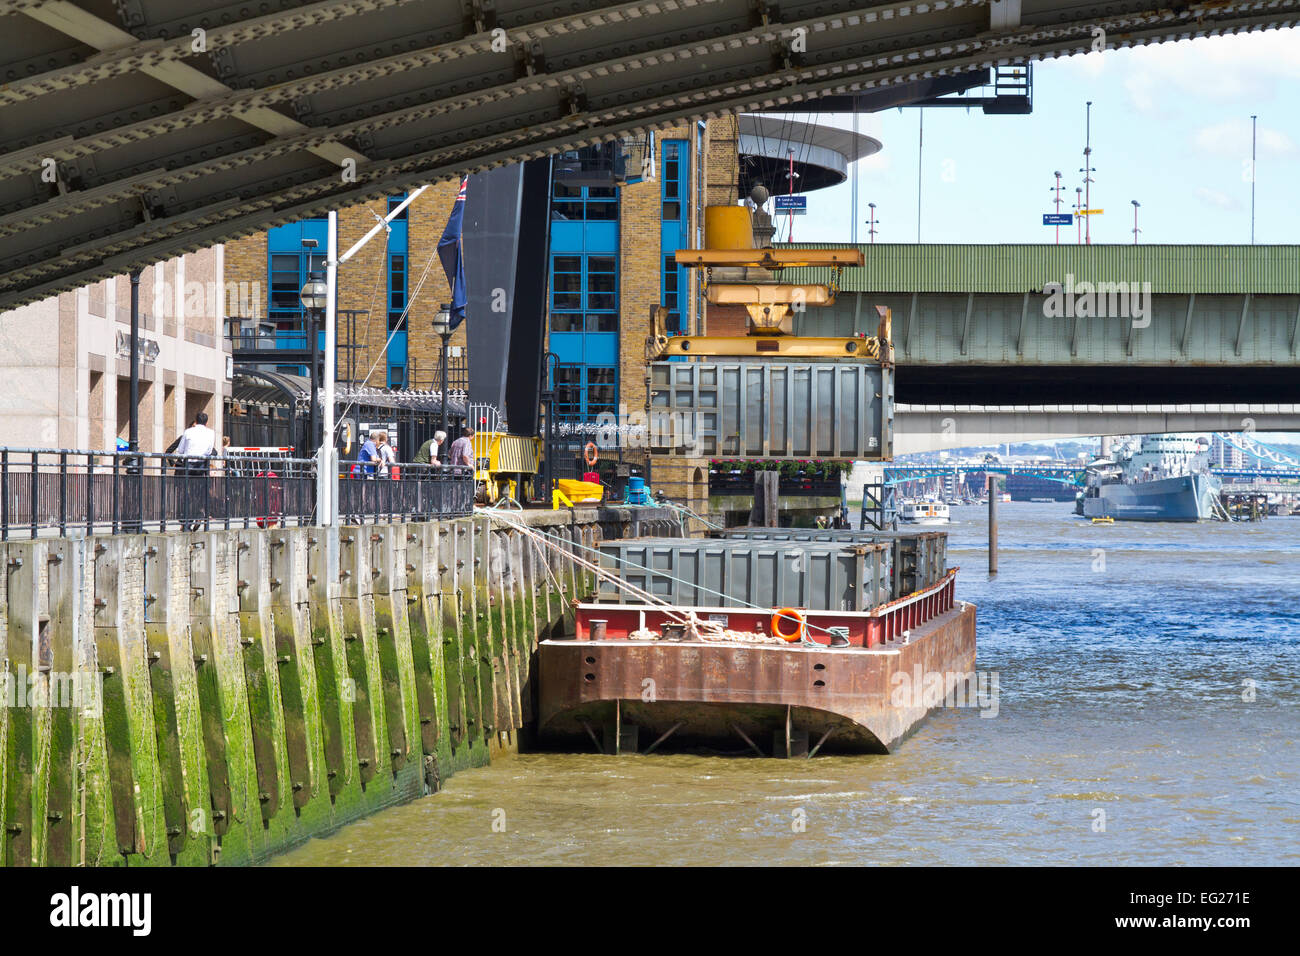 Walbrook Wharf waste containers waiting to be transferred down river, City of London - Stock Image